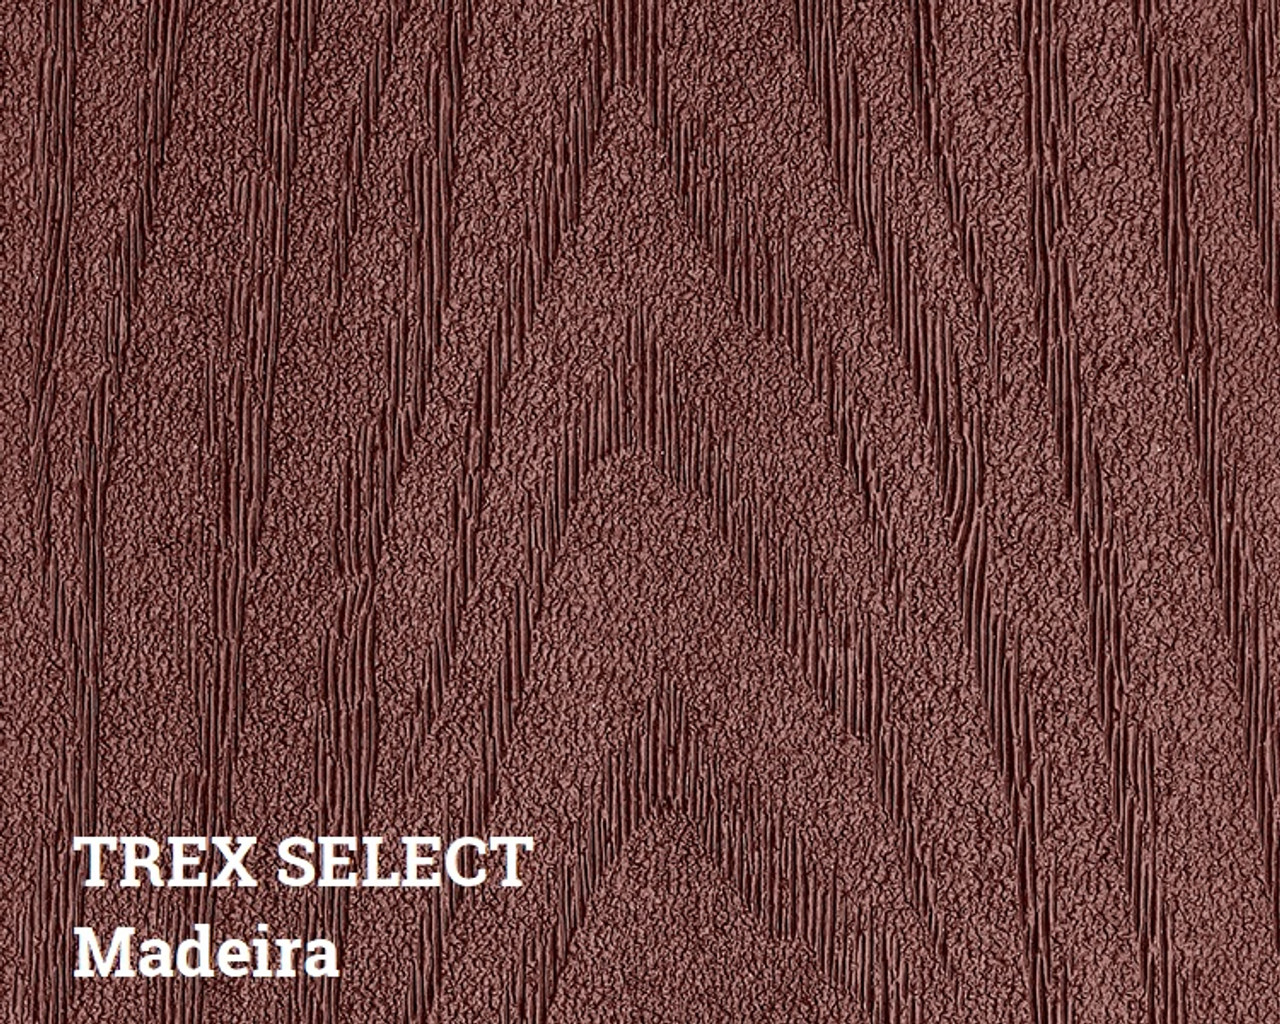 Trex Select Madeira Decking Surface